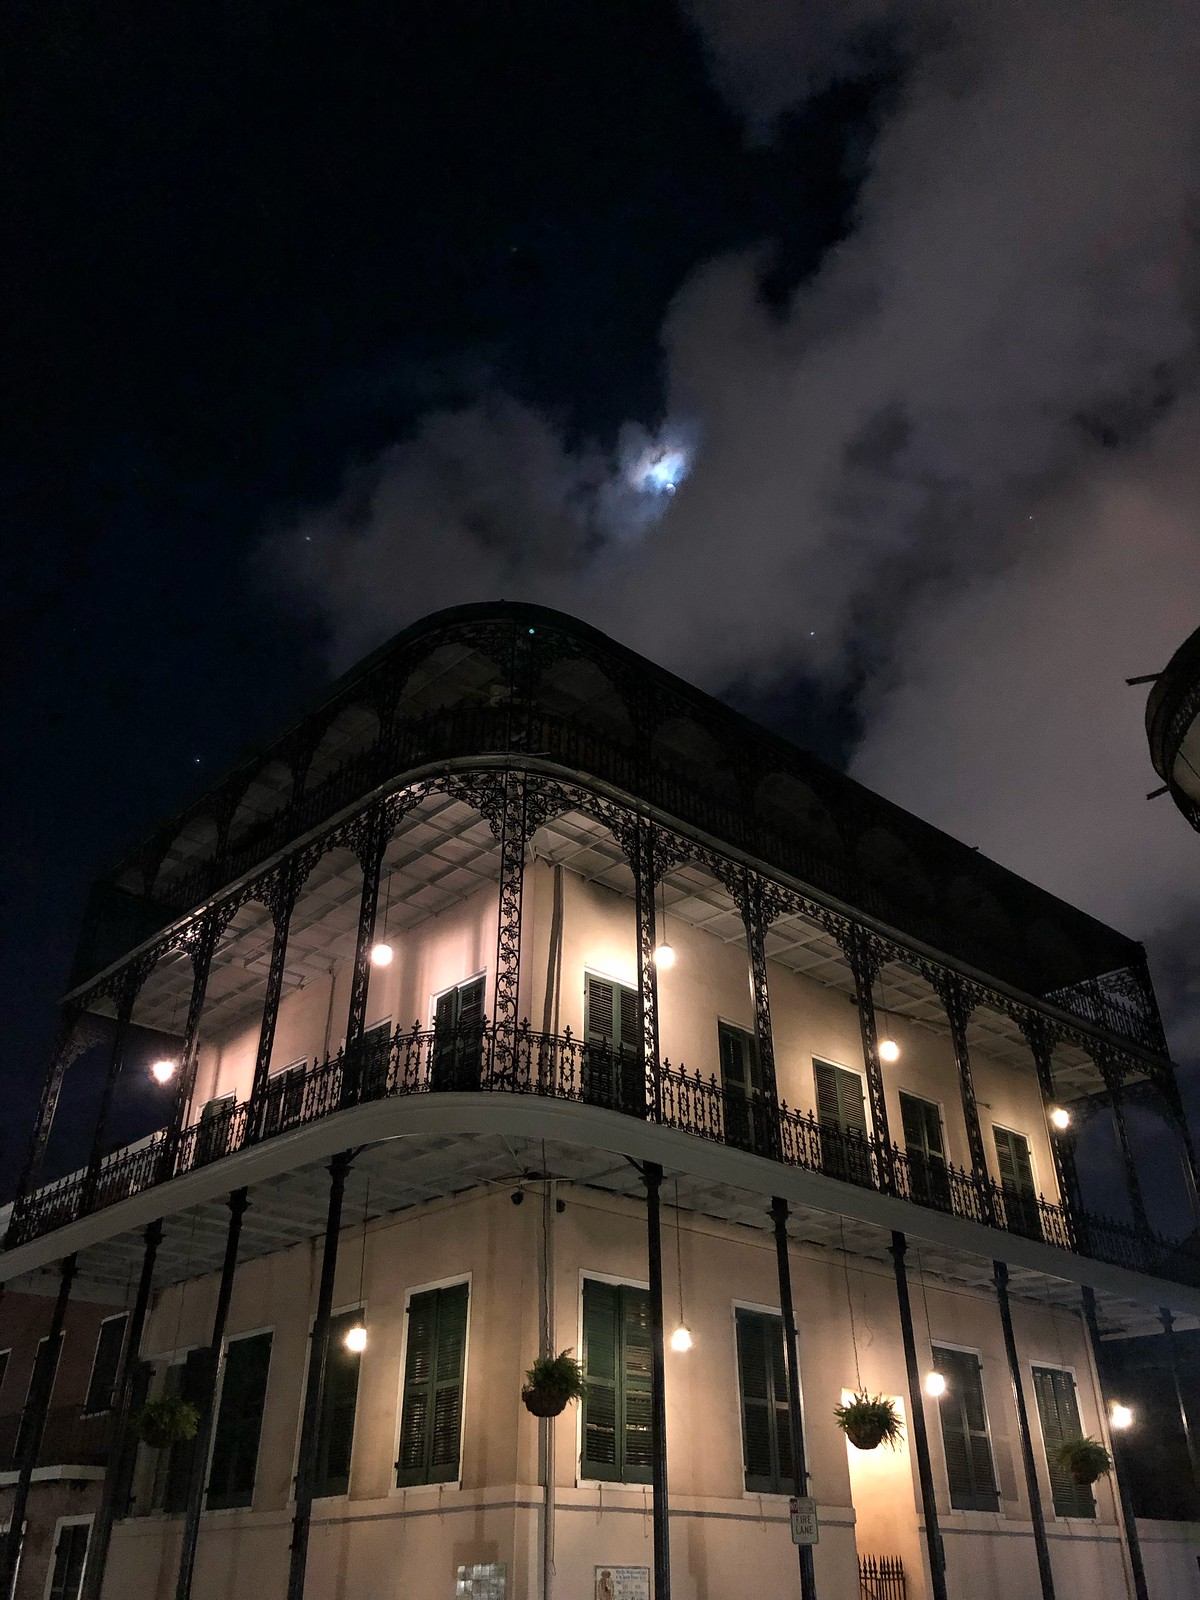 New Orleans Ghost Tour | French Quarter | How to Spend 48 Hours in New Orleans in the Summer | New Orleans Travel Guide | What to do in New Orleans | 2 Days in New Orleans | Best Things to do in New Orleans | First Timer's Guide to NOLA | NOLA Travel Guide | 2 Day Itinerary for New Orleans